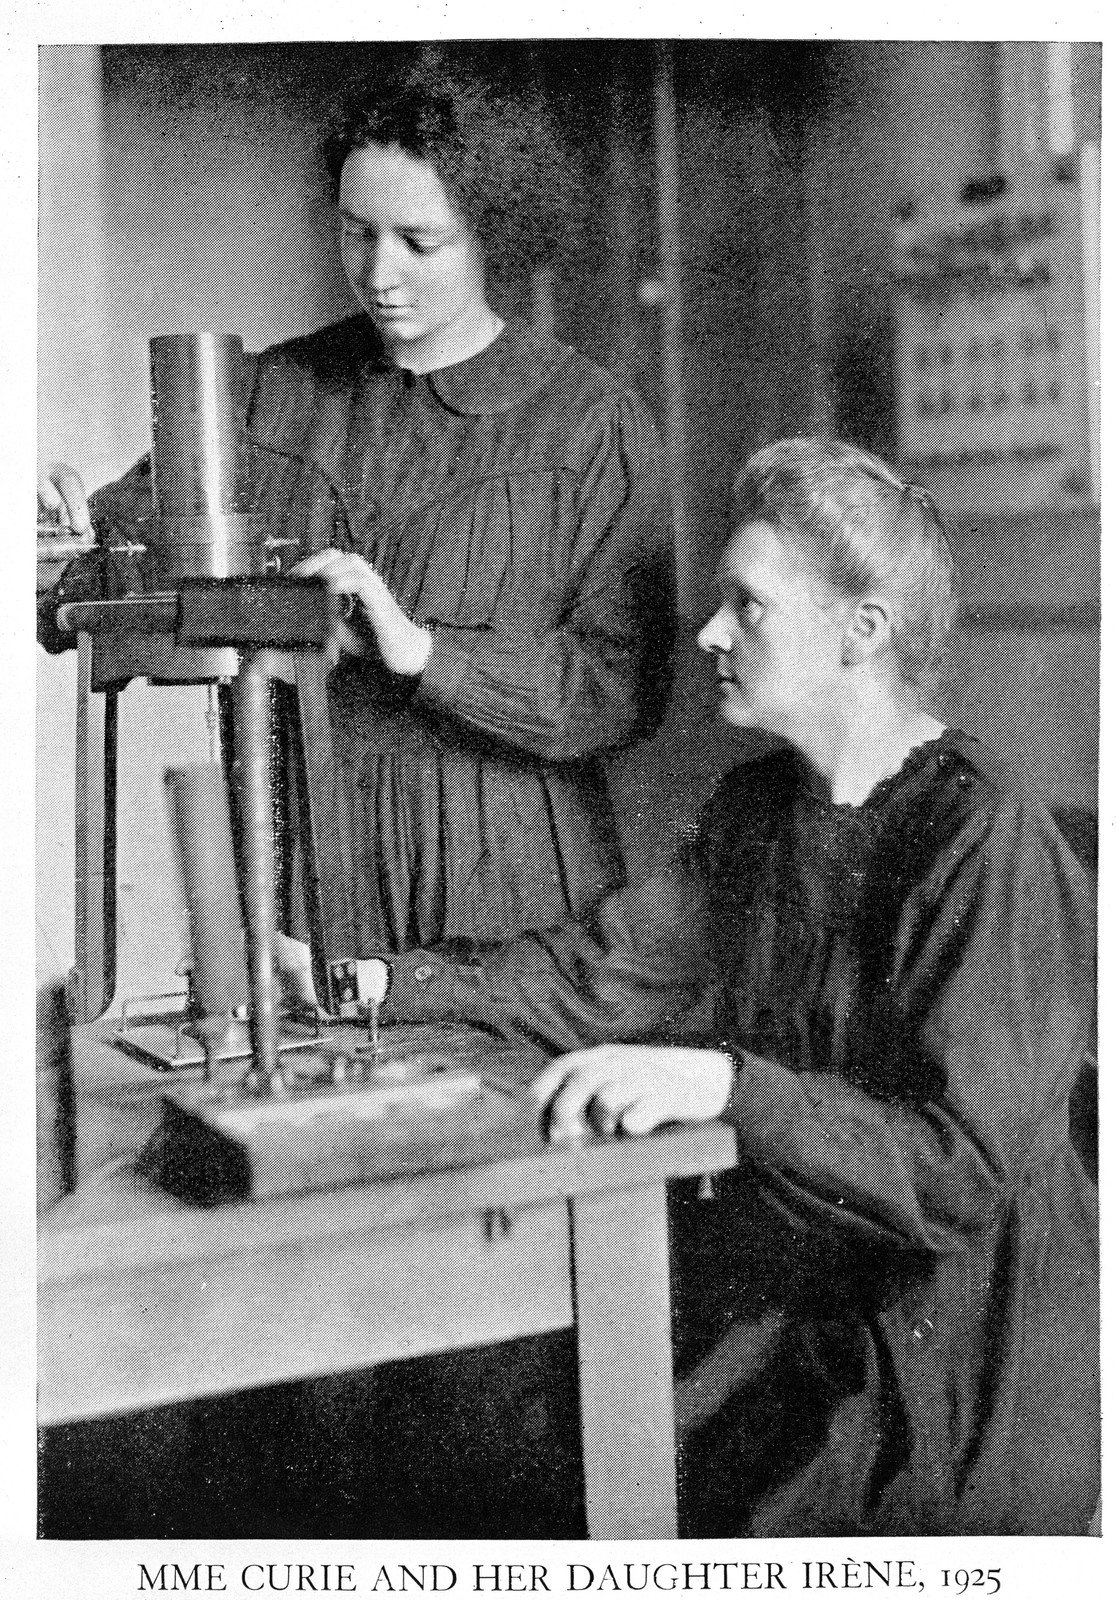 Portrait of Marie Curie and her daughter Irene, 1925, Unknown, Wellcome Collection, CC BY